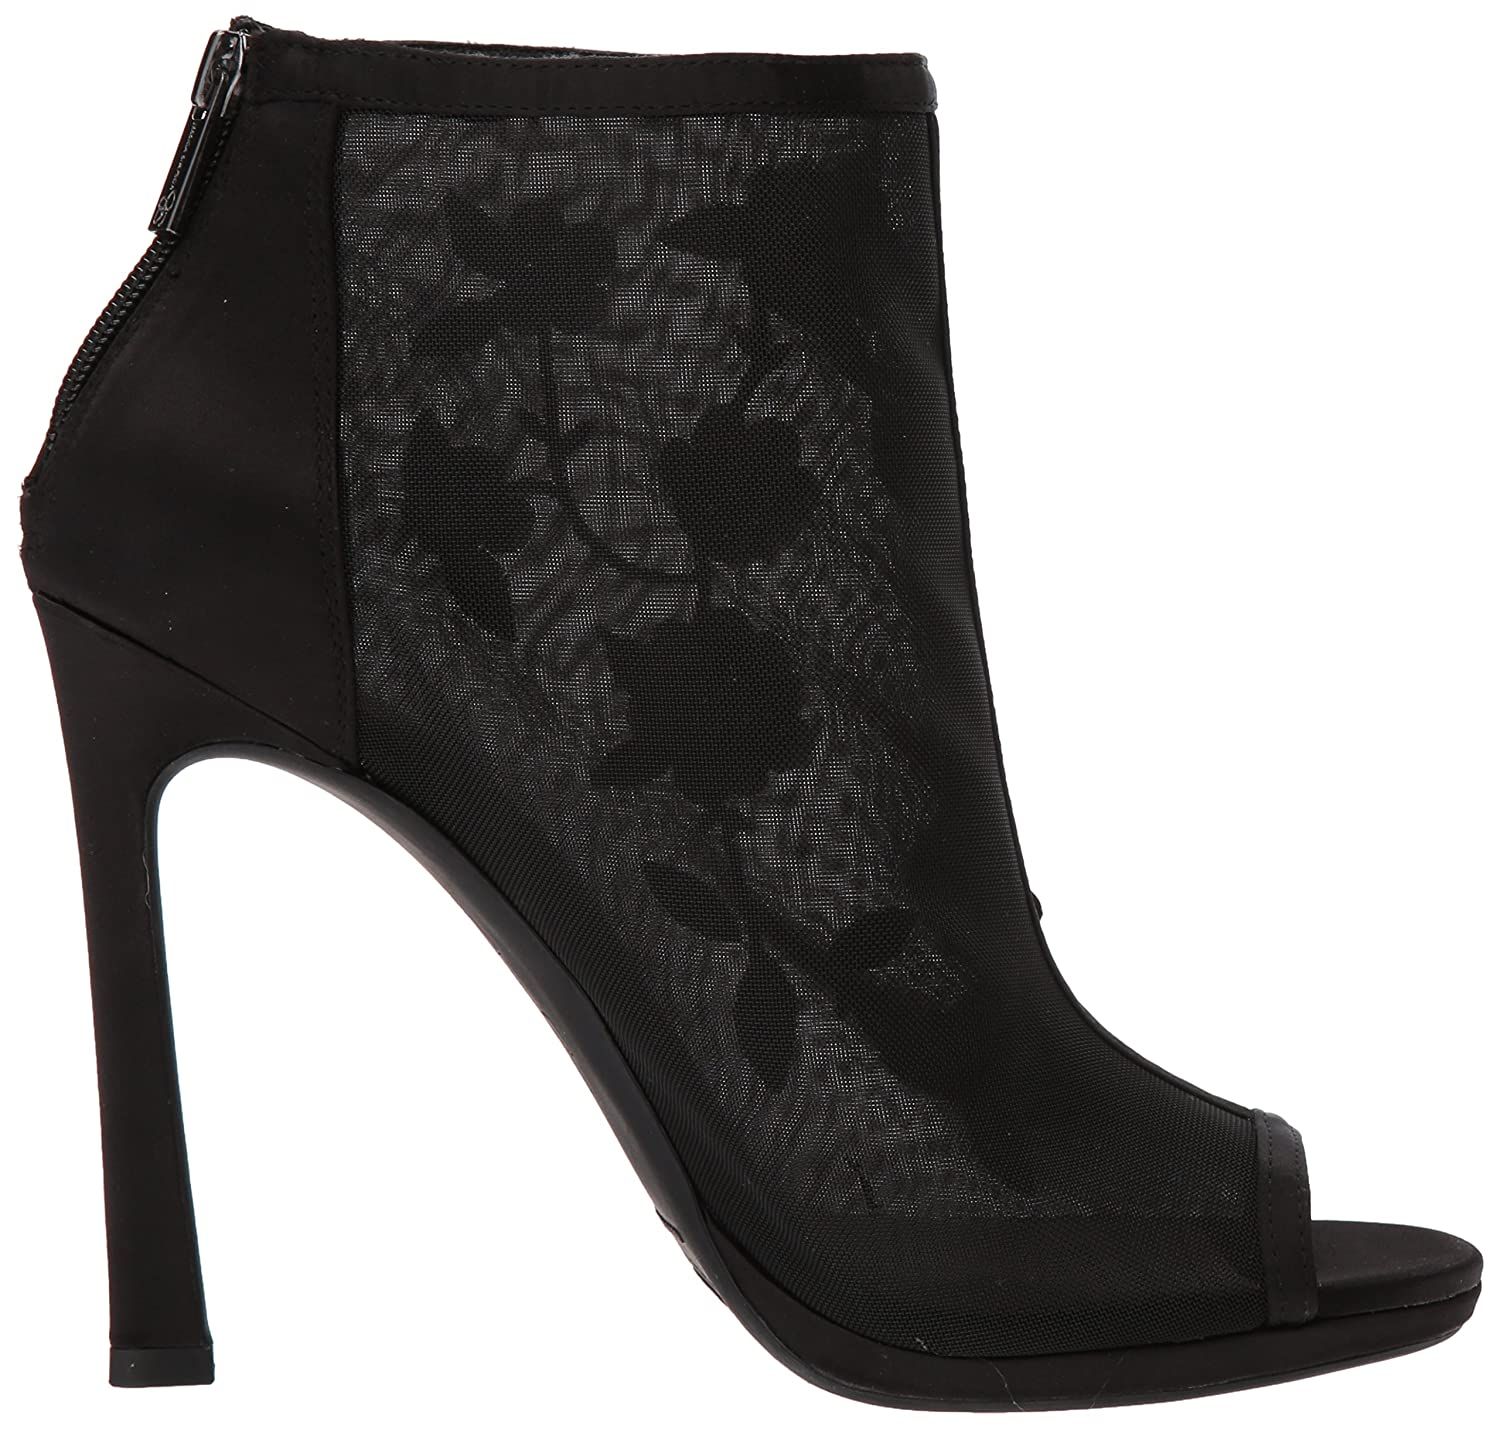 Jessica Simpson Women's Pedell US|Black Pump B077447SLB 7.5 B(M) US|Black Pedell Mesh 6600b6